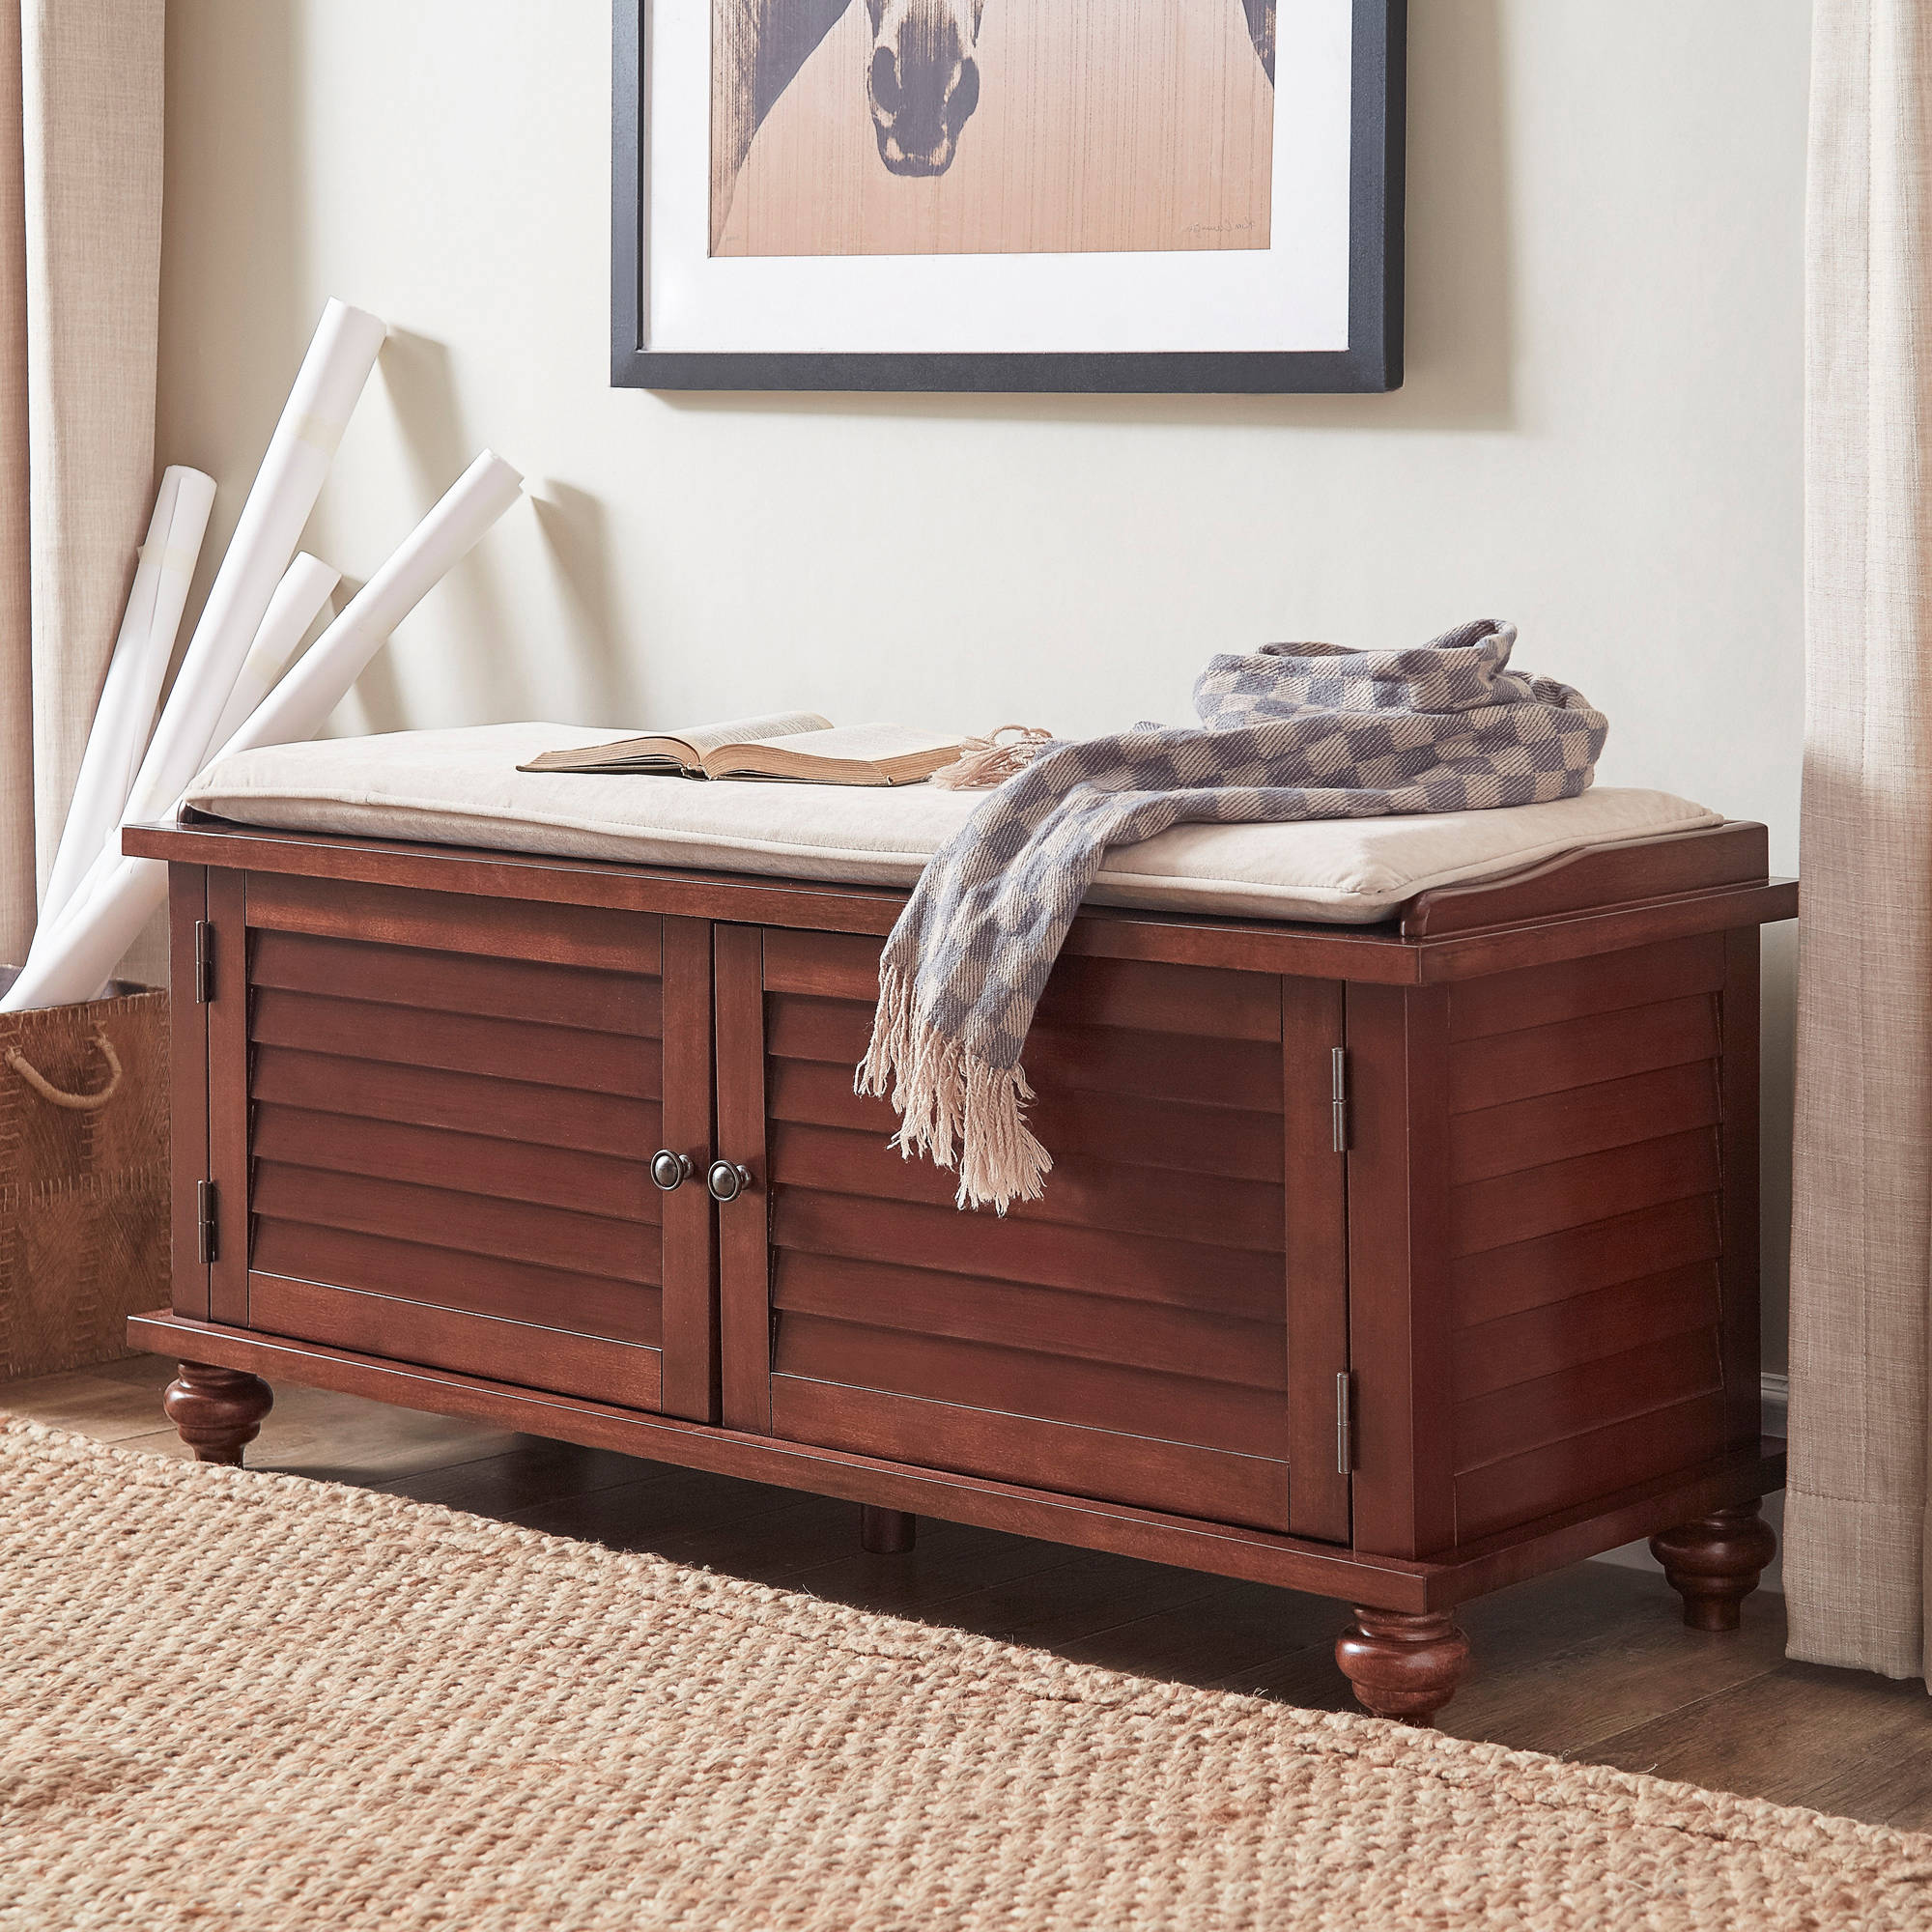 Weston Home Georgia Entryway Storage Bench, Multiple Colors